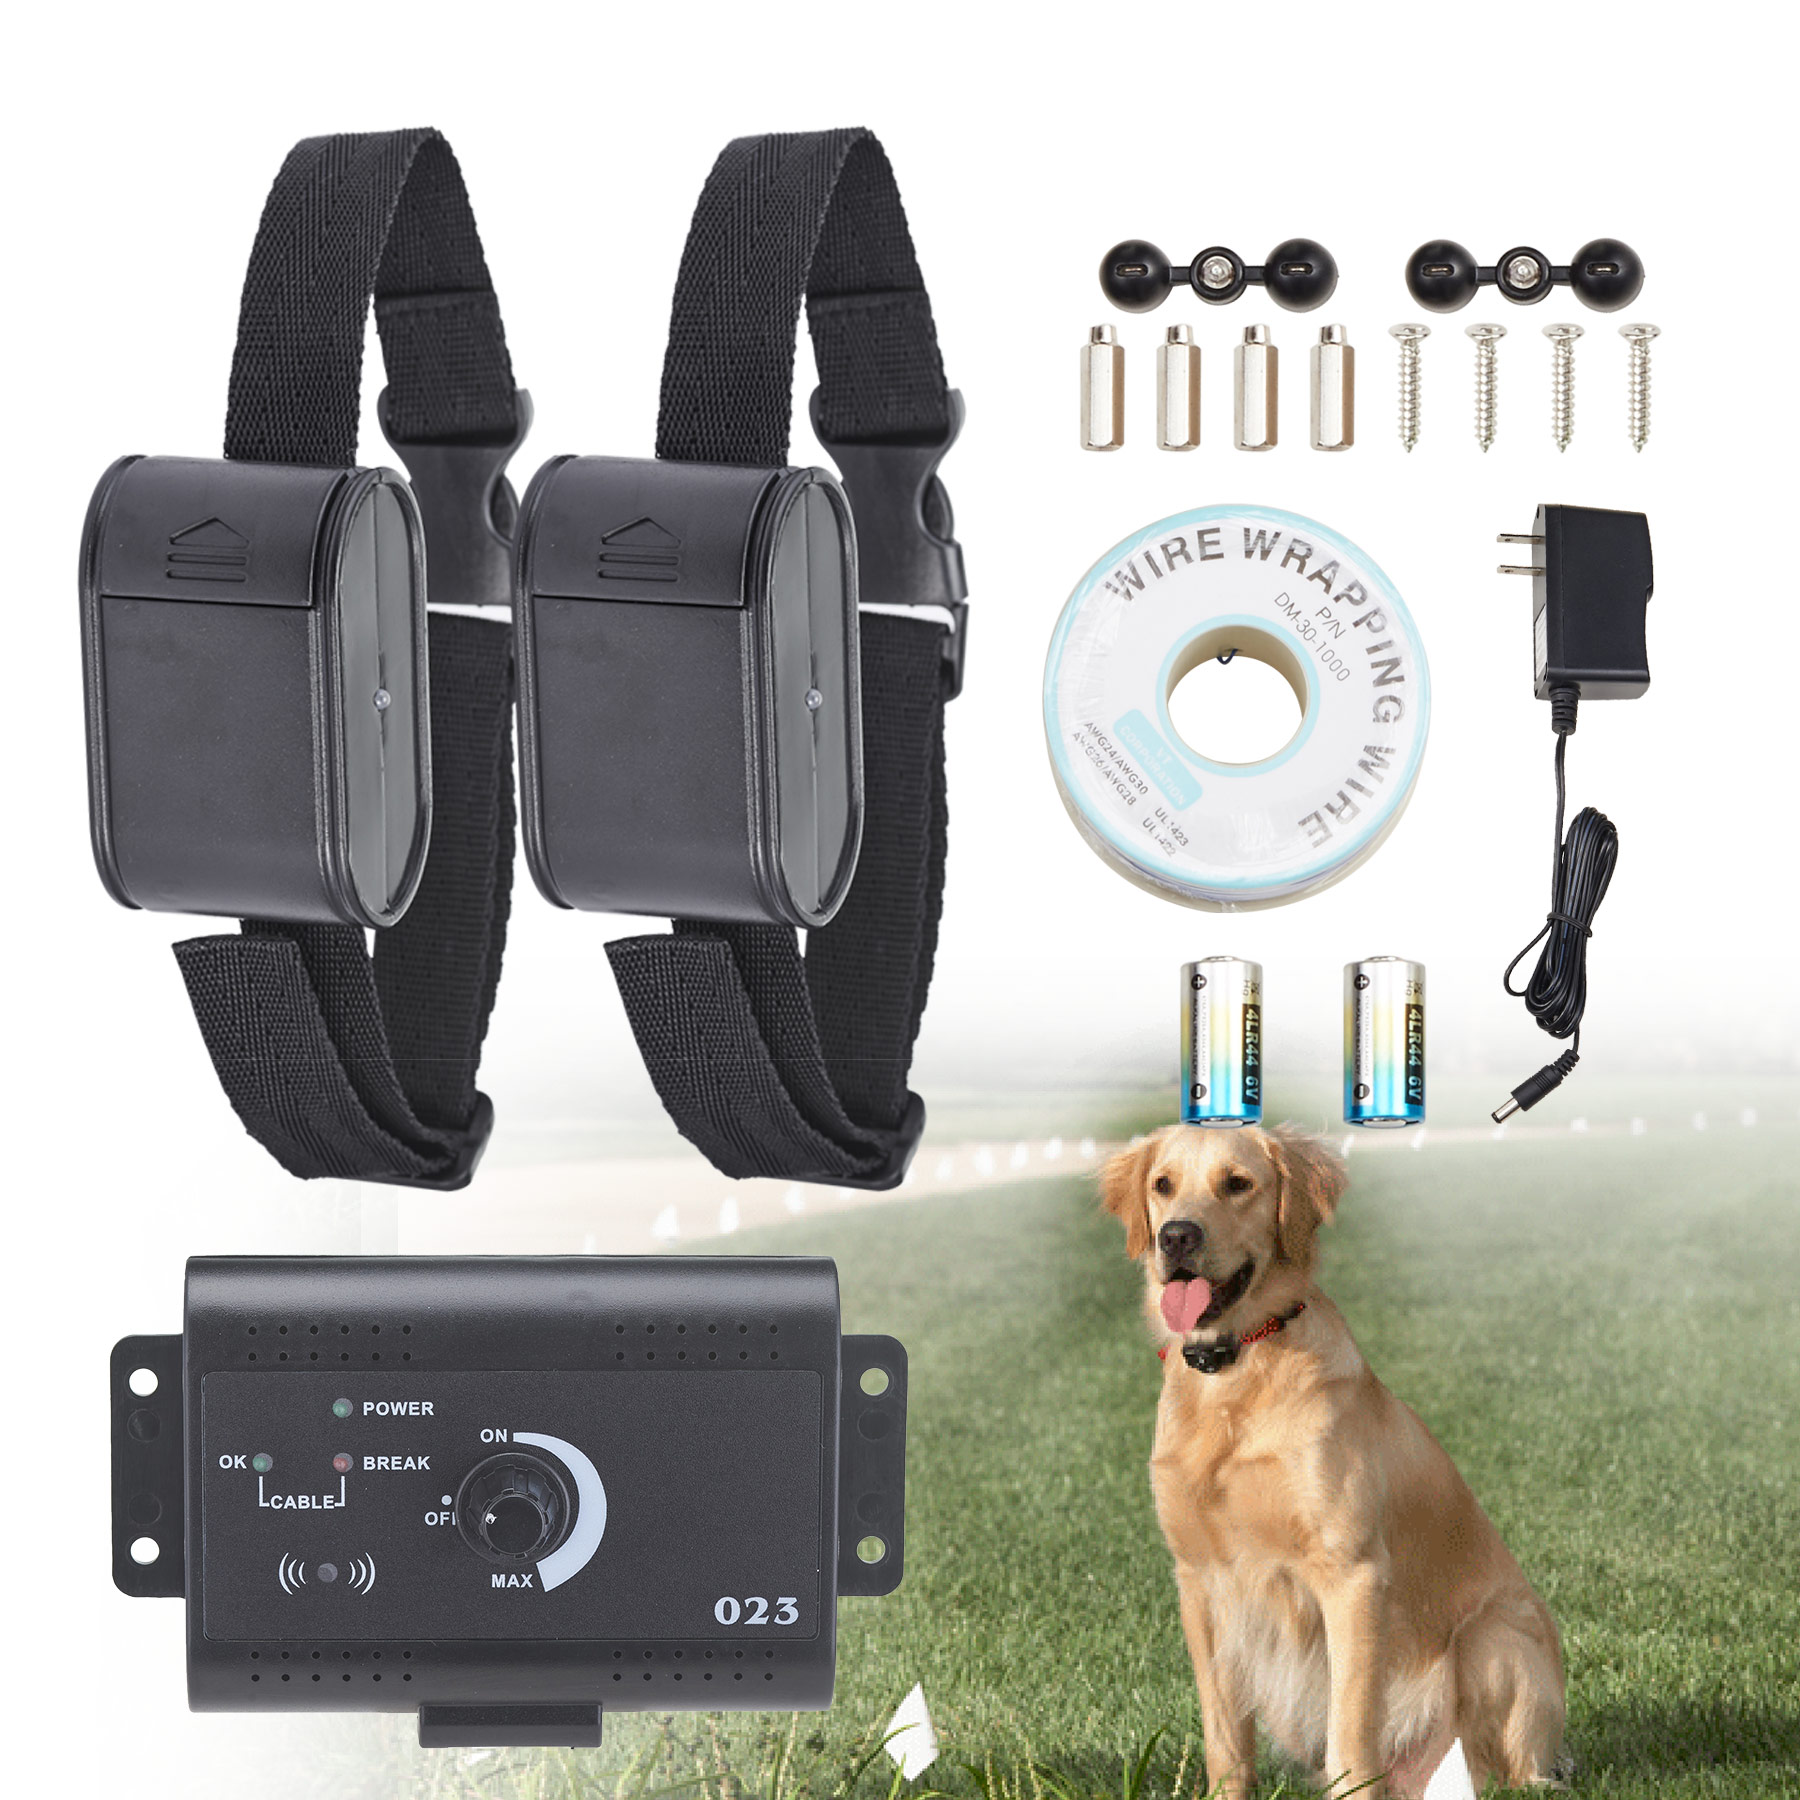 2 Dogs Underground Shock Audio Collar Dog Training Pet safe Electric Fence